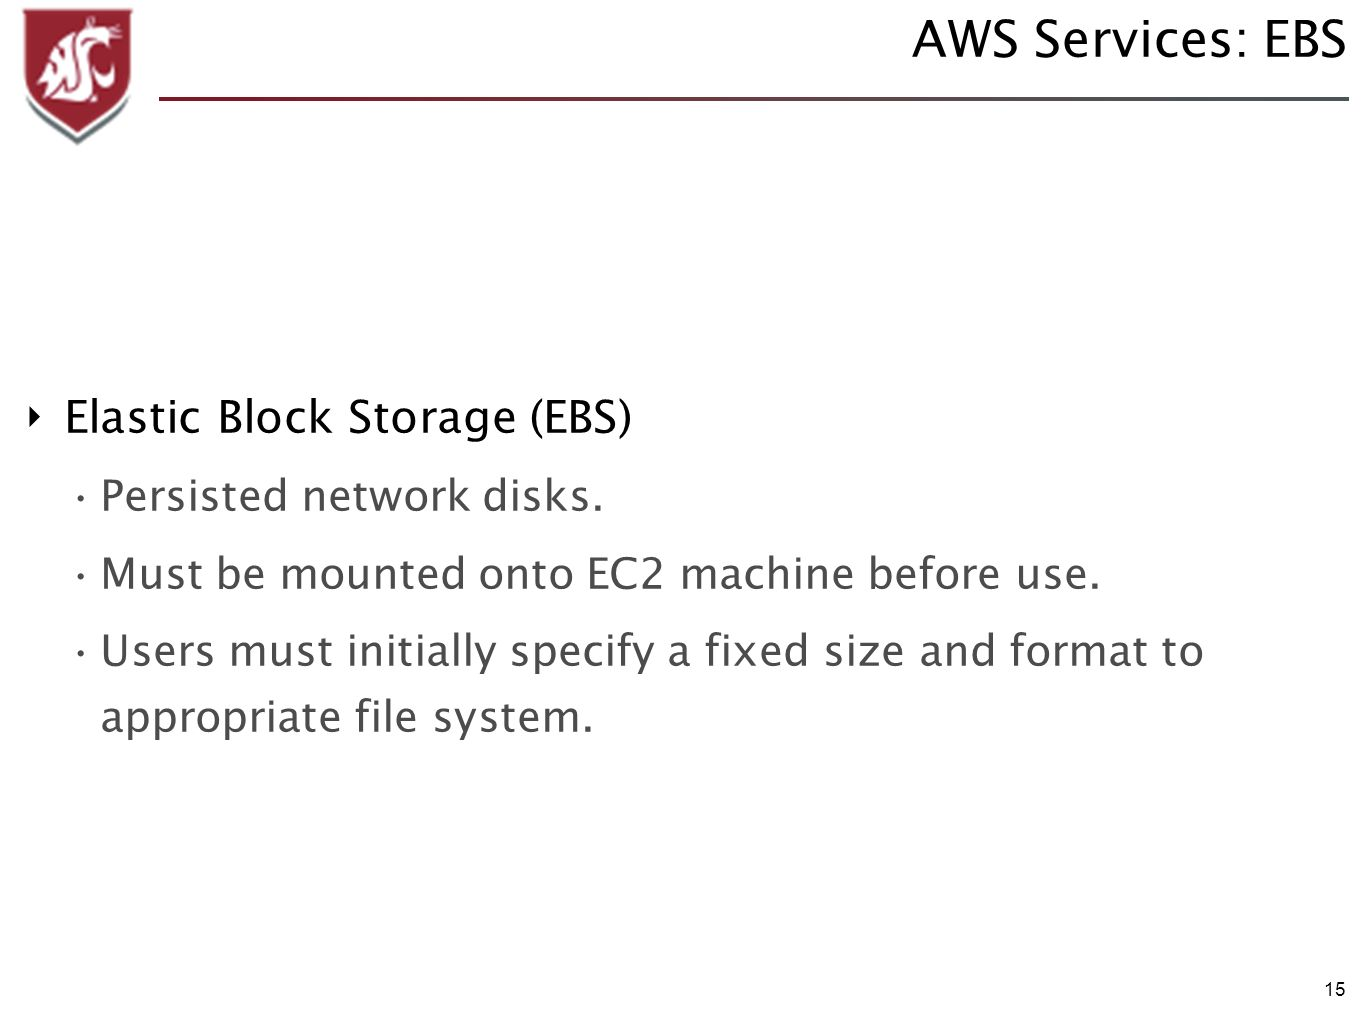 15 AWS Services: EBS Elastic Block Storage (EBS) Persisted network disks. Must be mounted onto EC2 machine before use. Users must initially specify a